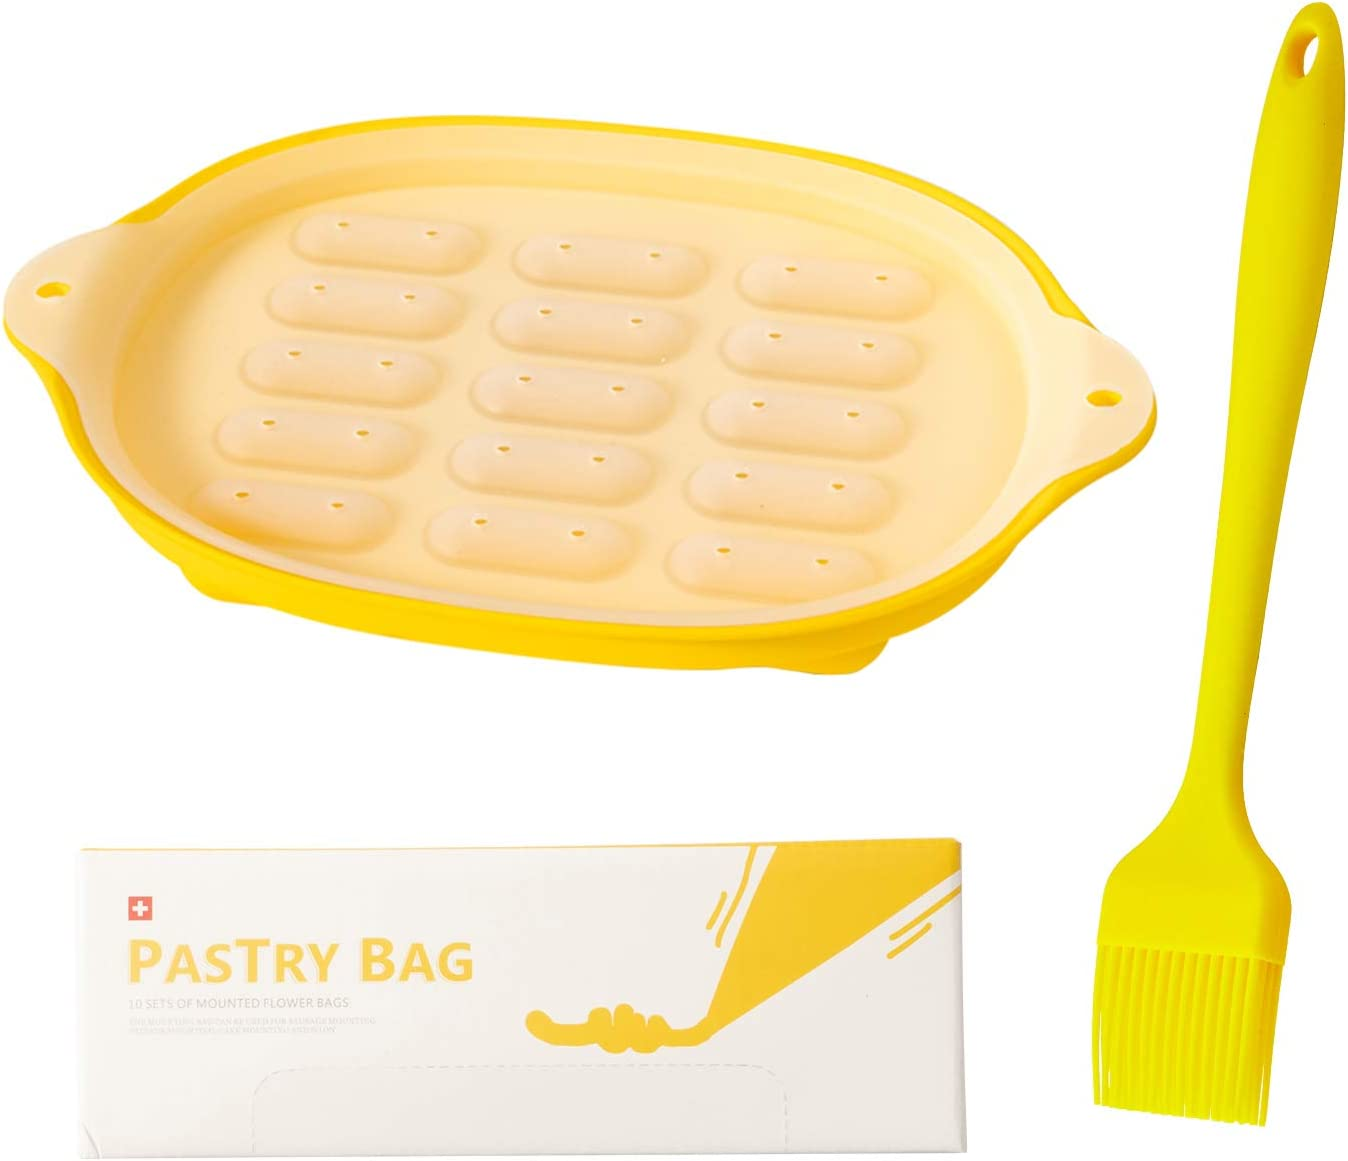 Blest Mini Sausage Mold Set for Making Baby Foods or Hot Dogs,BPA Free,Oven-Safe Up to 446℉,Easy to Pop Out,Brush for Baking,BBQ and More,Pastry Bags are Disposable,Non-Burst(Pack of 10).